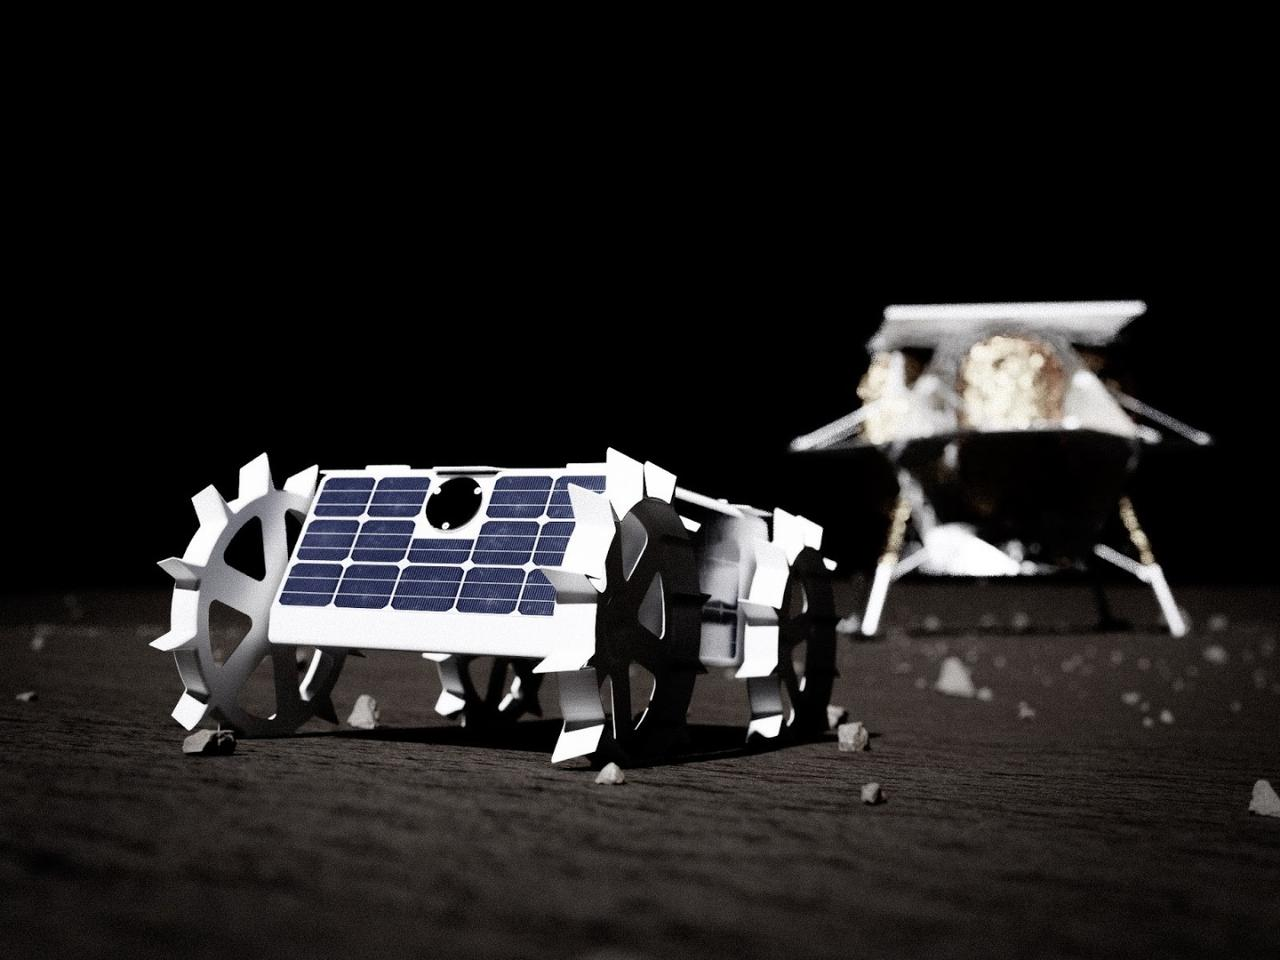 A model of the CMU lunar rover